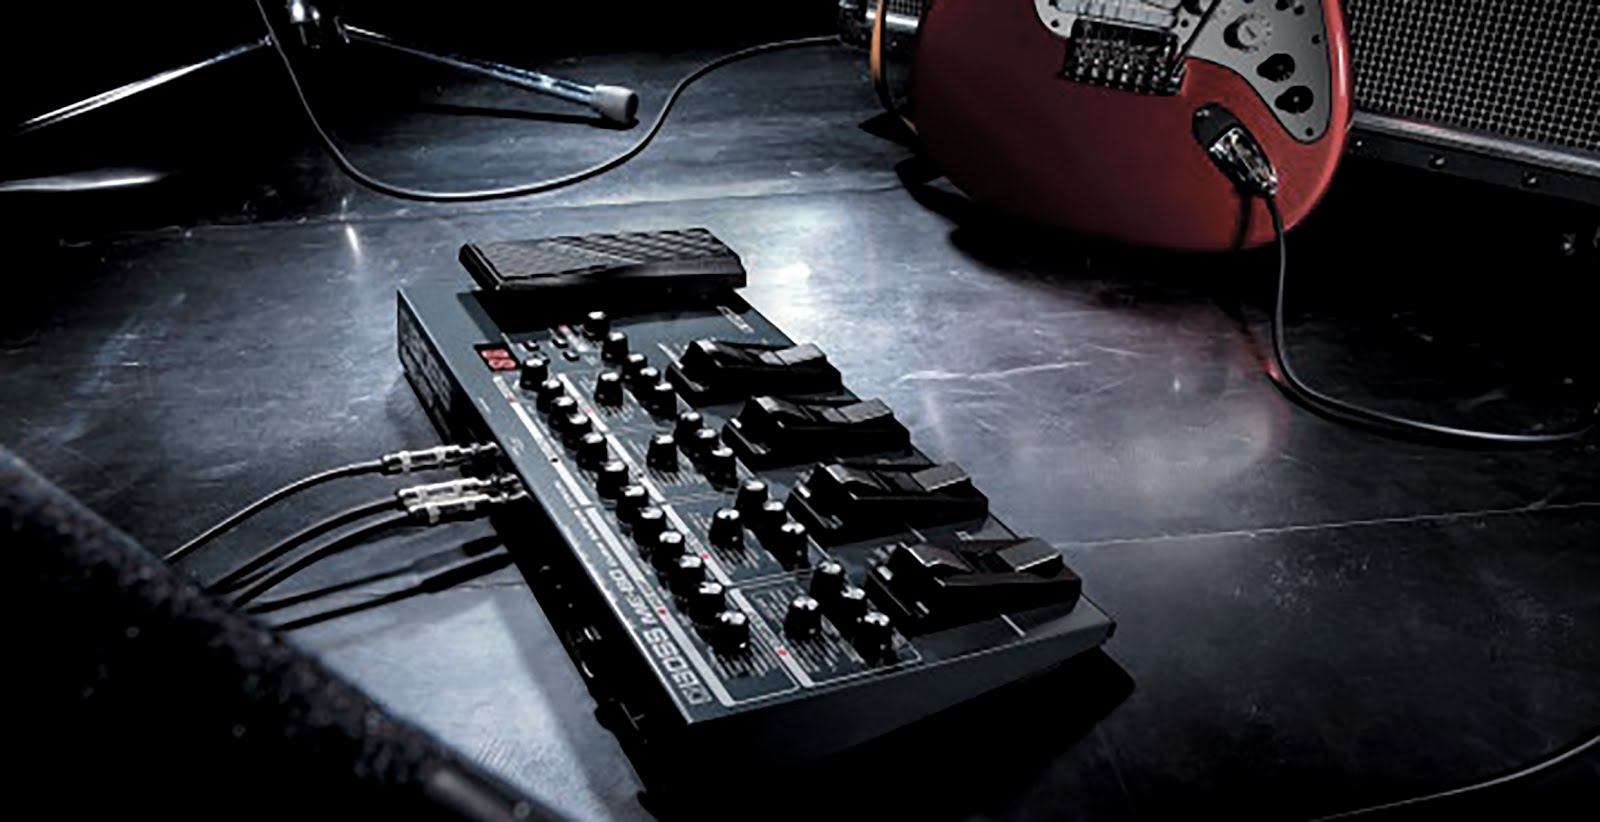 boss me 80 multiple guitar effects on stagee